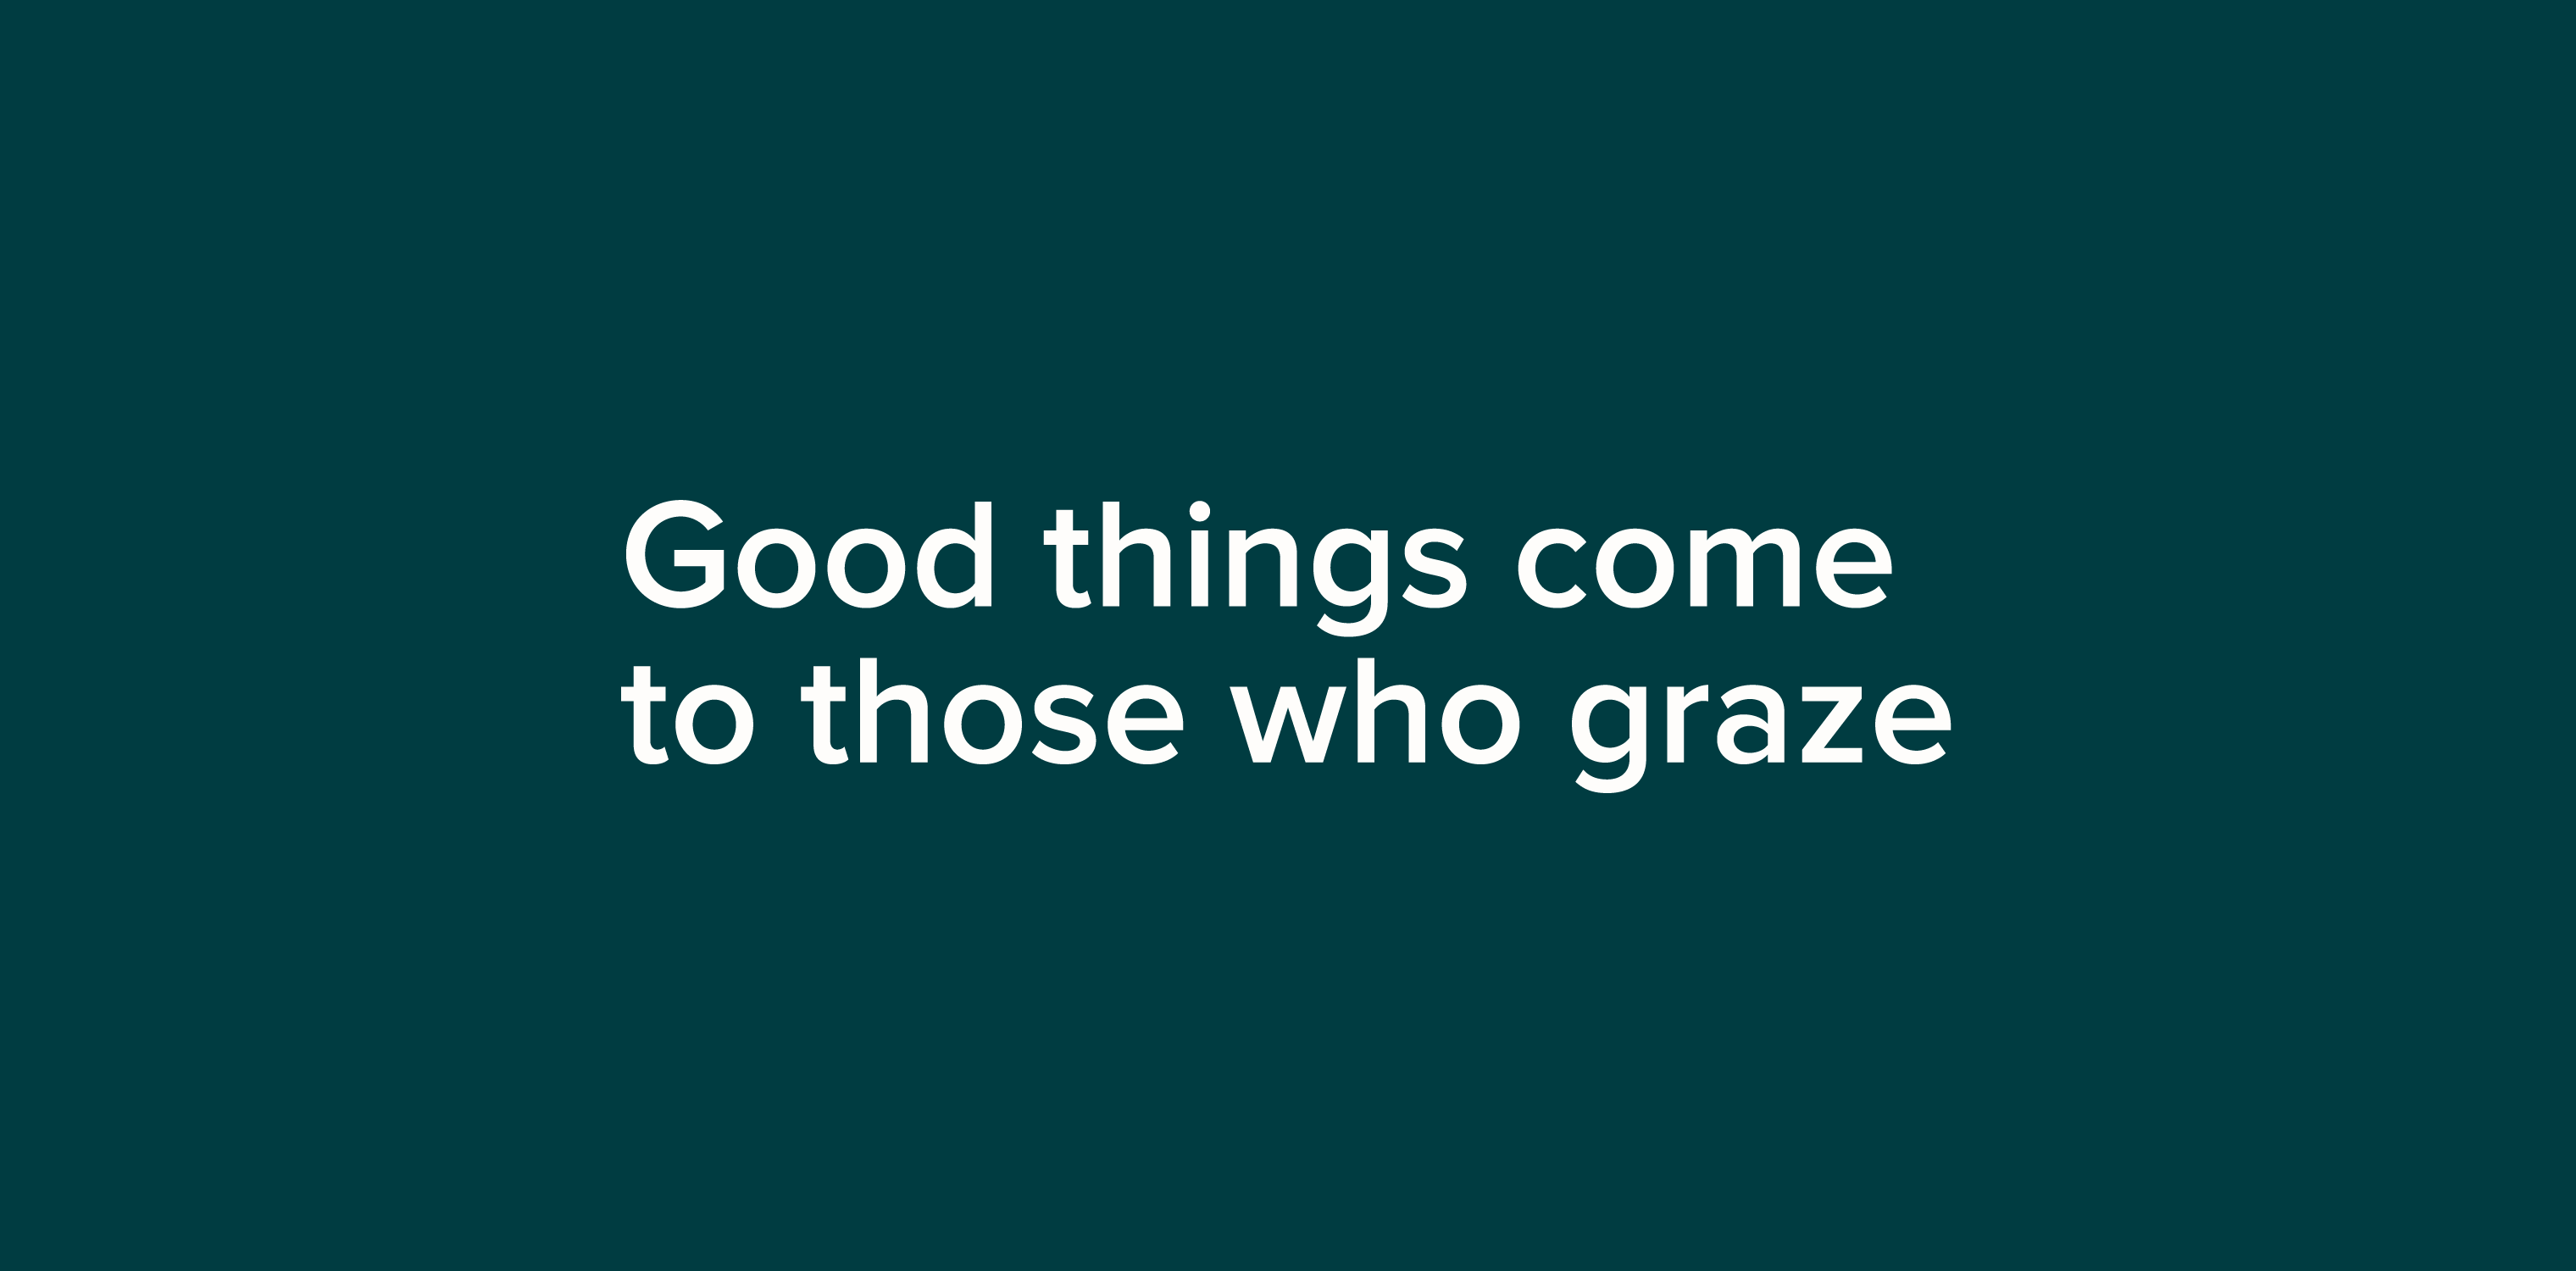 White 'Good things come to those who graze' on a teal background to reinforce the Grazy brand promise